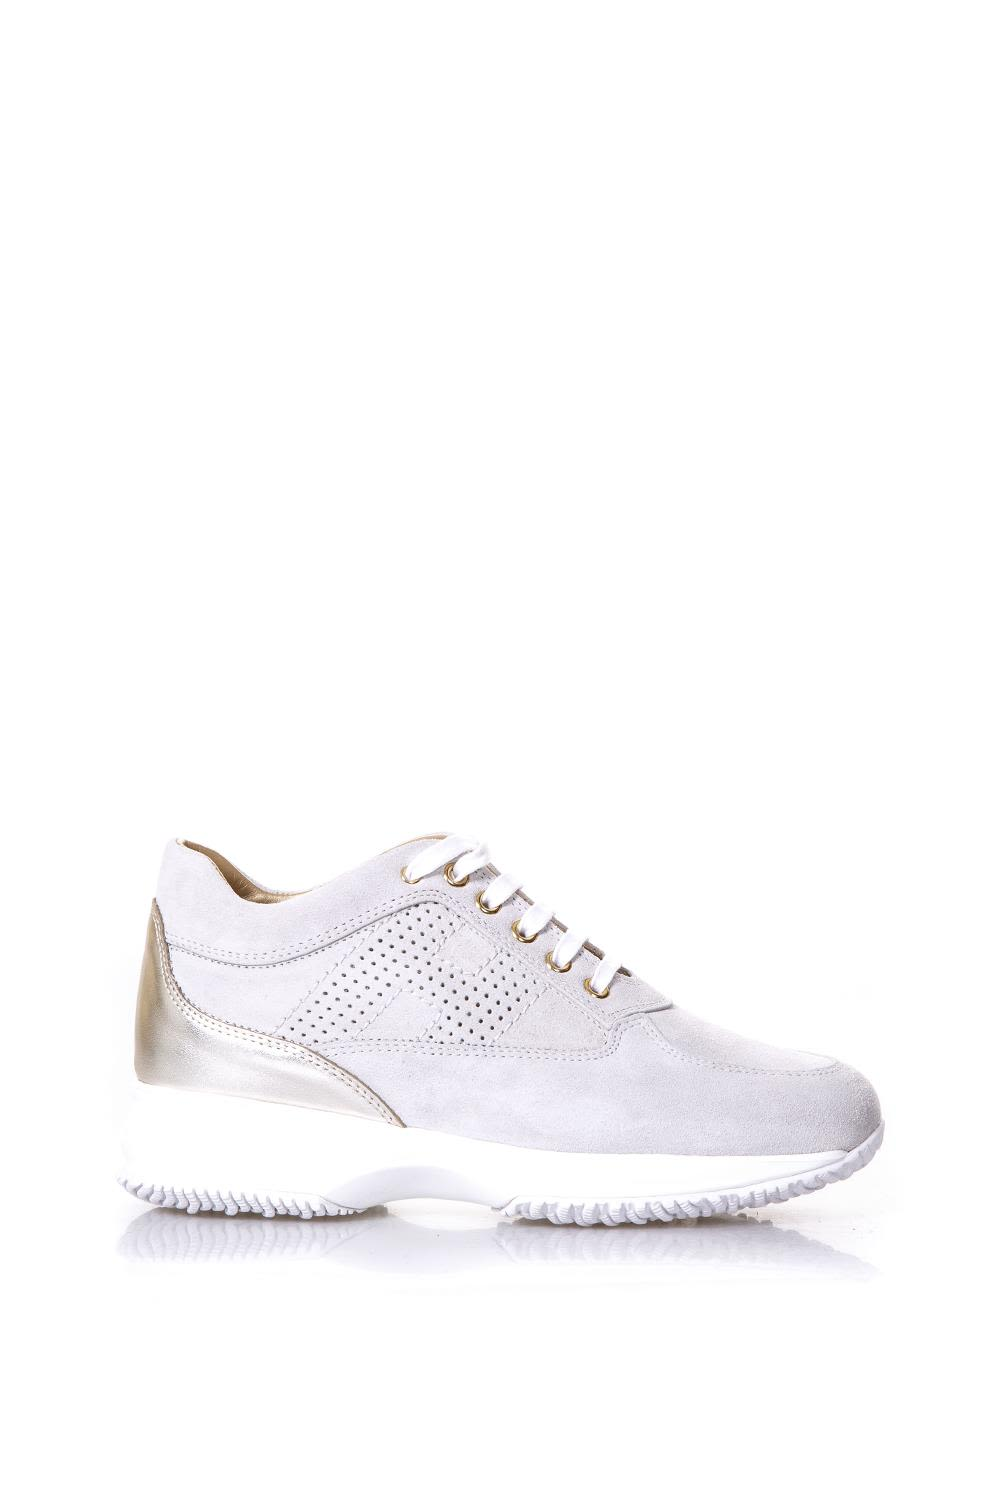 Sale 2018 New Looking For For Sale Hogan Interactive Beige Suede & Leather Sneakers qnPYu